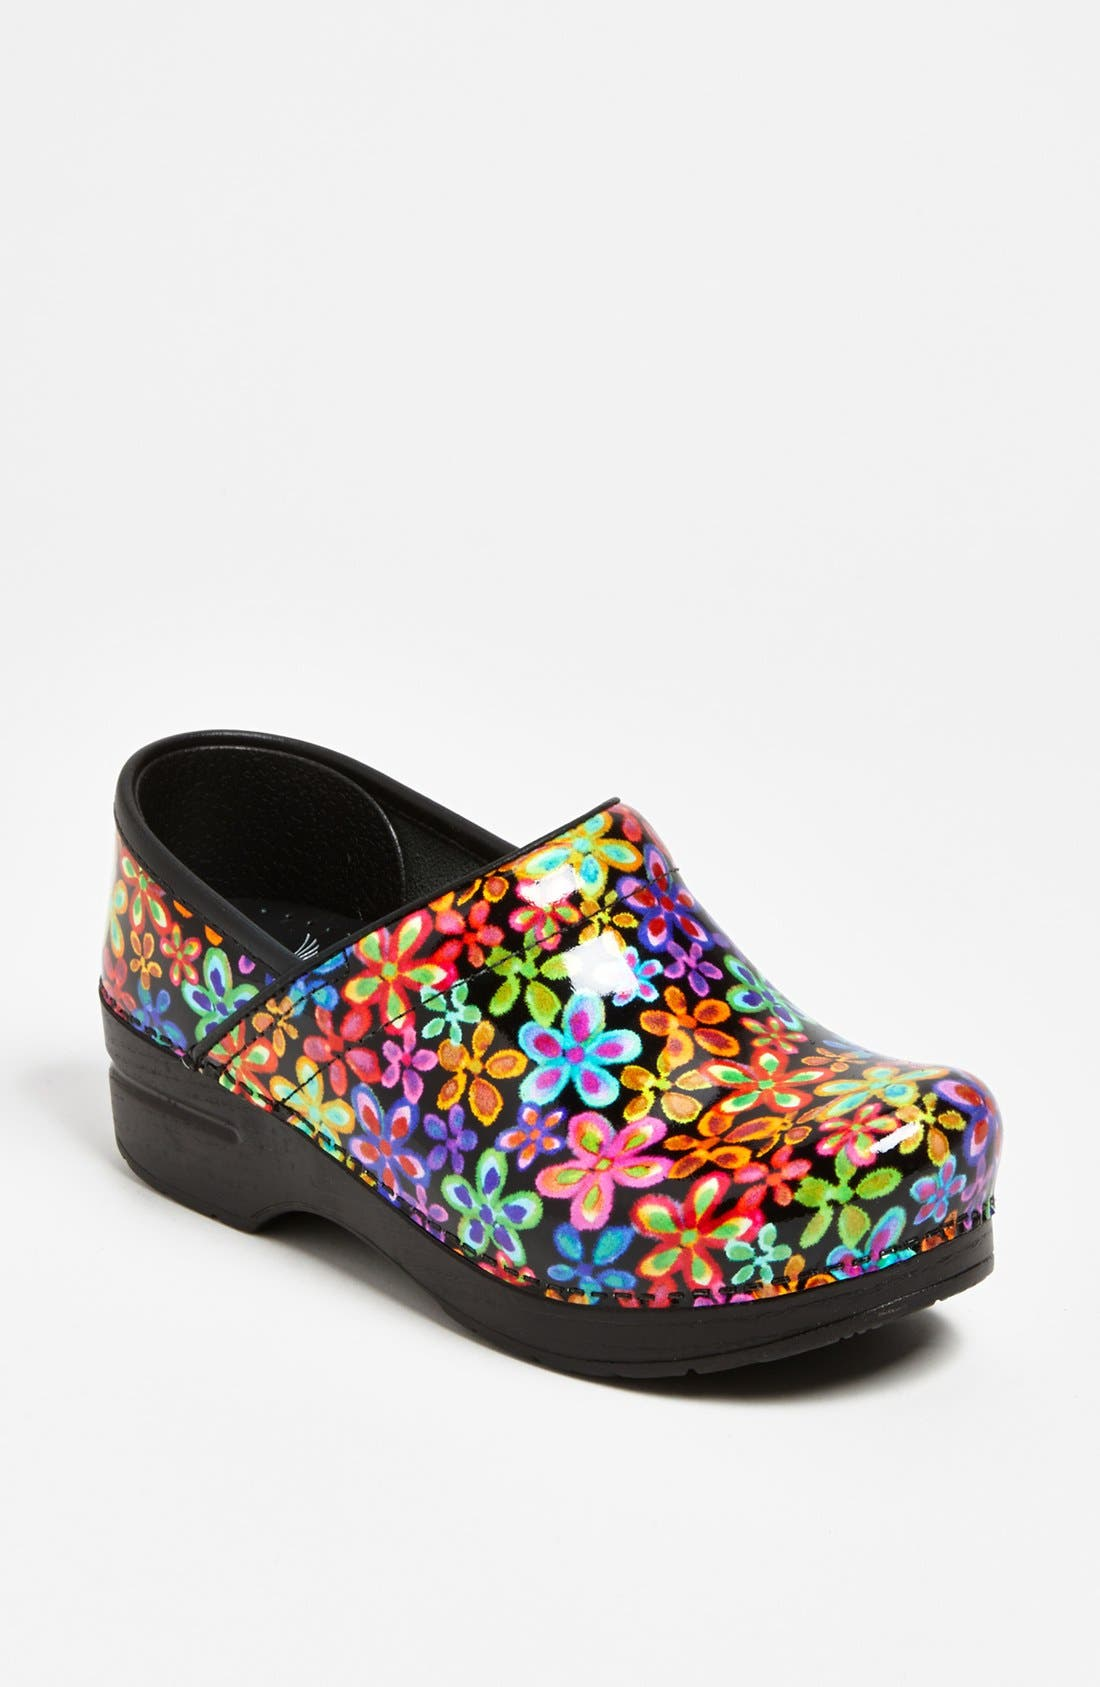 Main Image - Dansko 'Professional - Flower Power' Clog